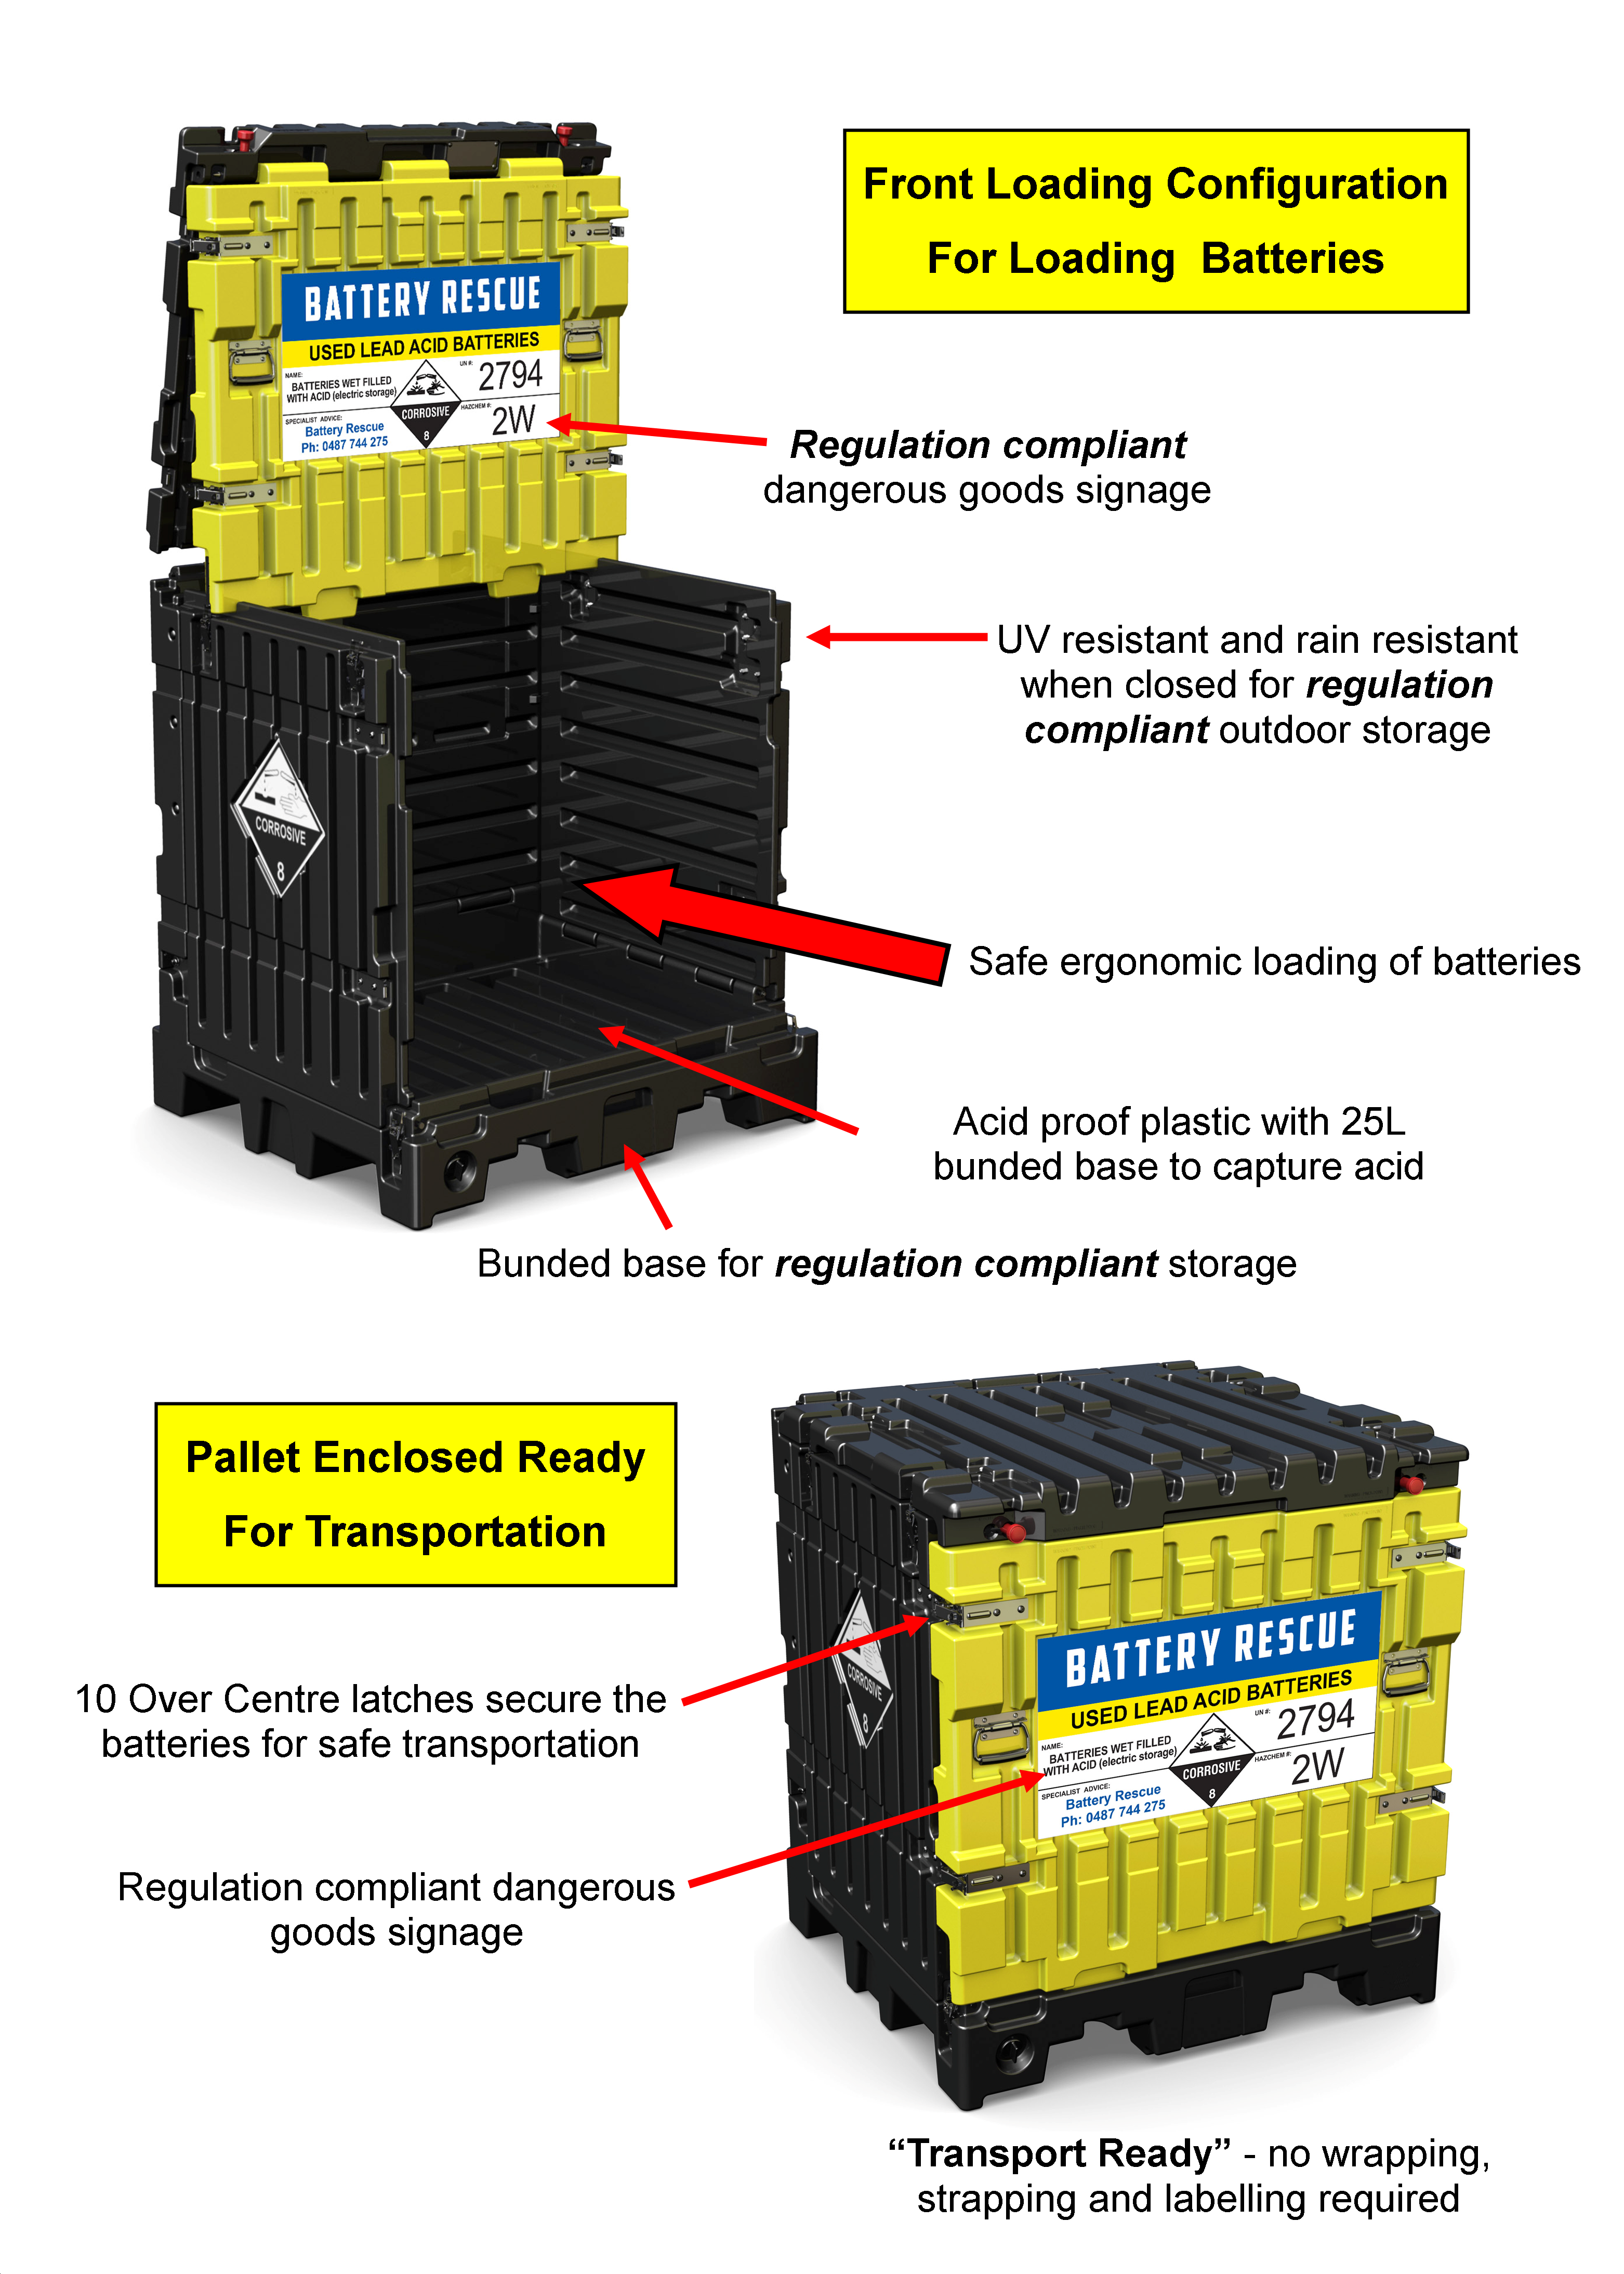 Used Lead Acid Battery Container for safe storage and transport of used batteries